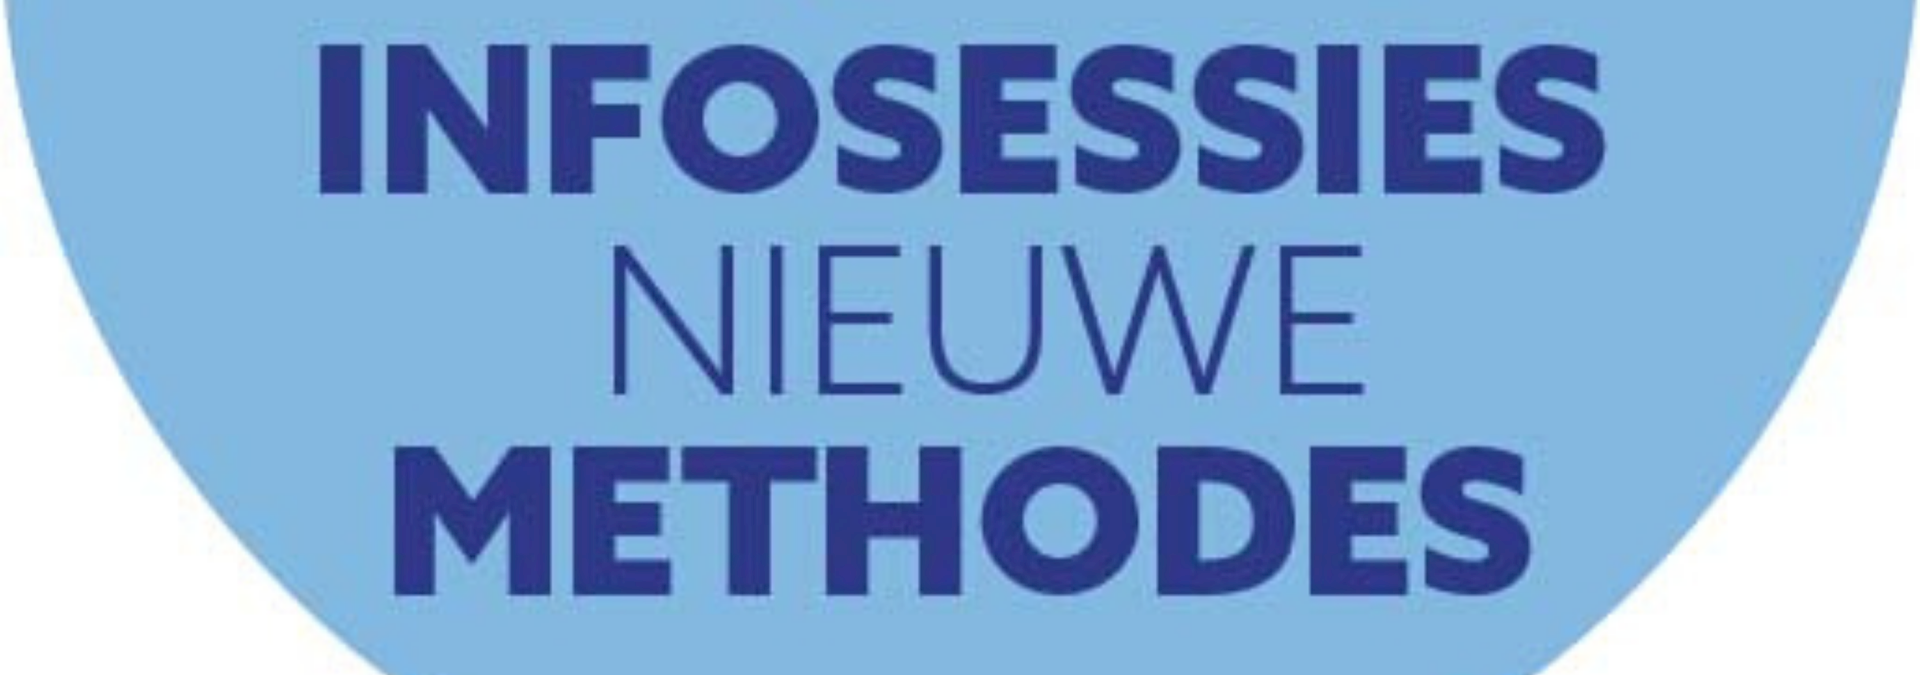 Infosessies nieuwe methodes | Hervorming secundair